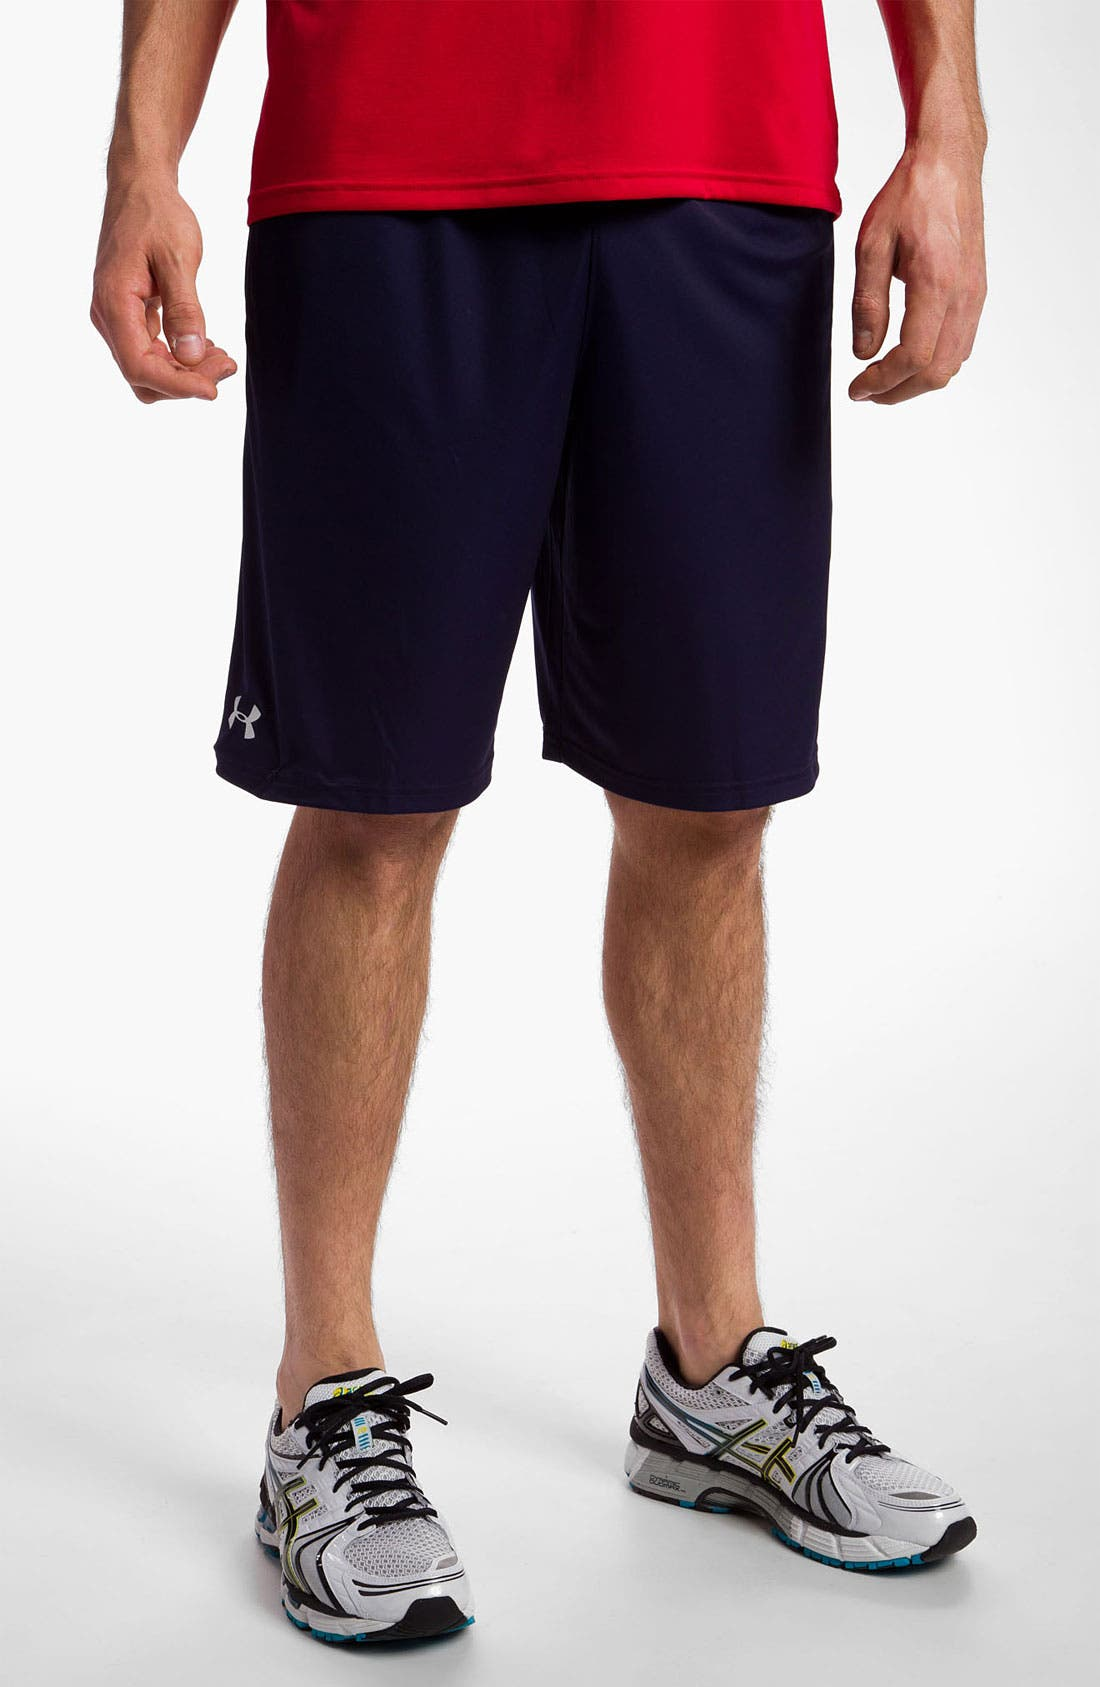 Main Image - Under Armour 'Micro' HeatGear™ Knit Shorts